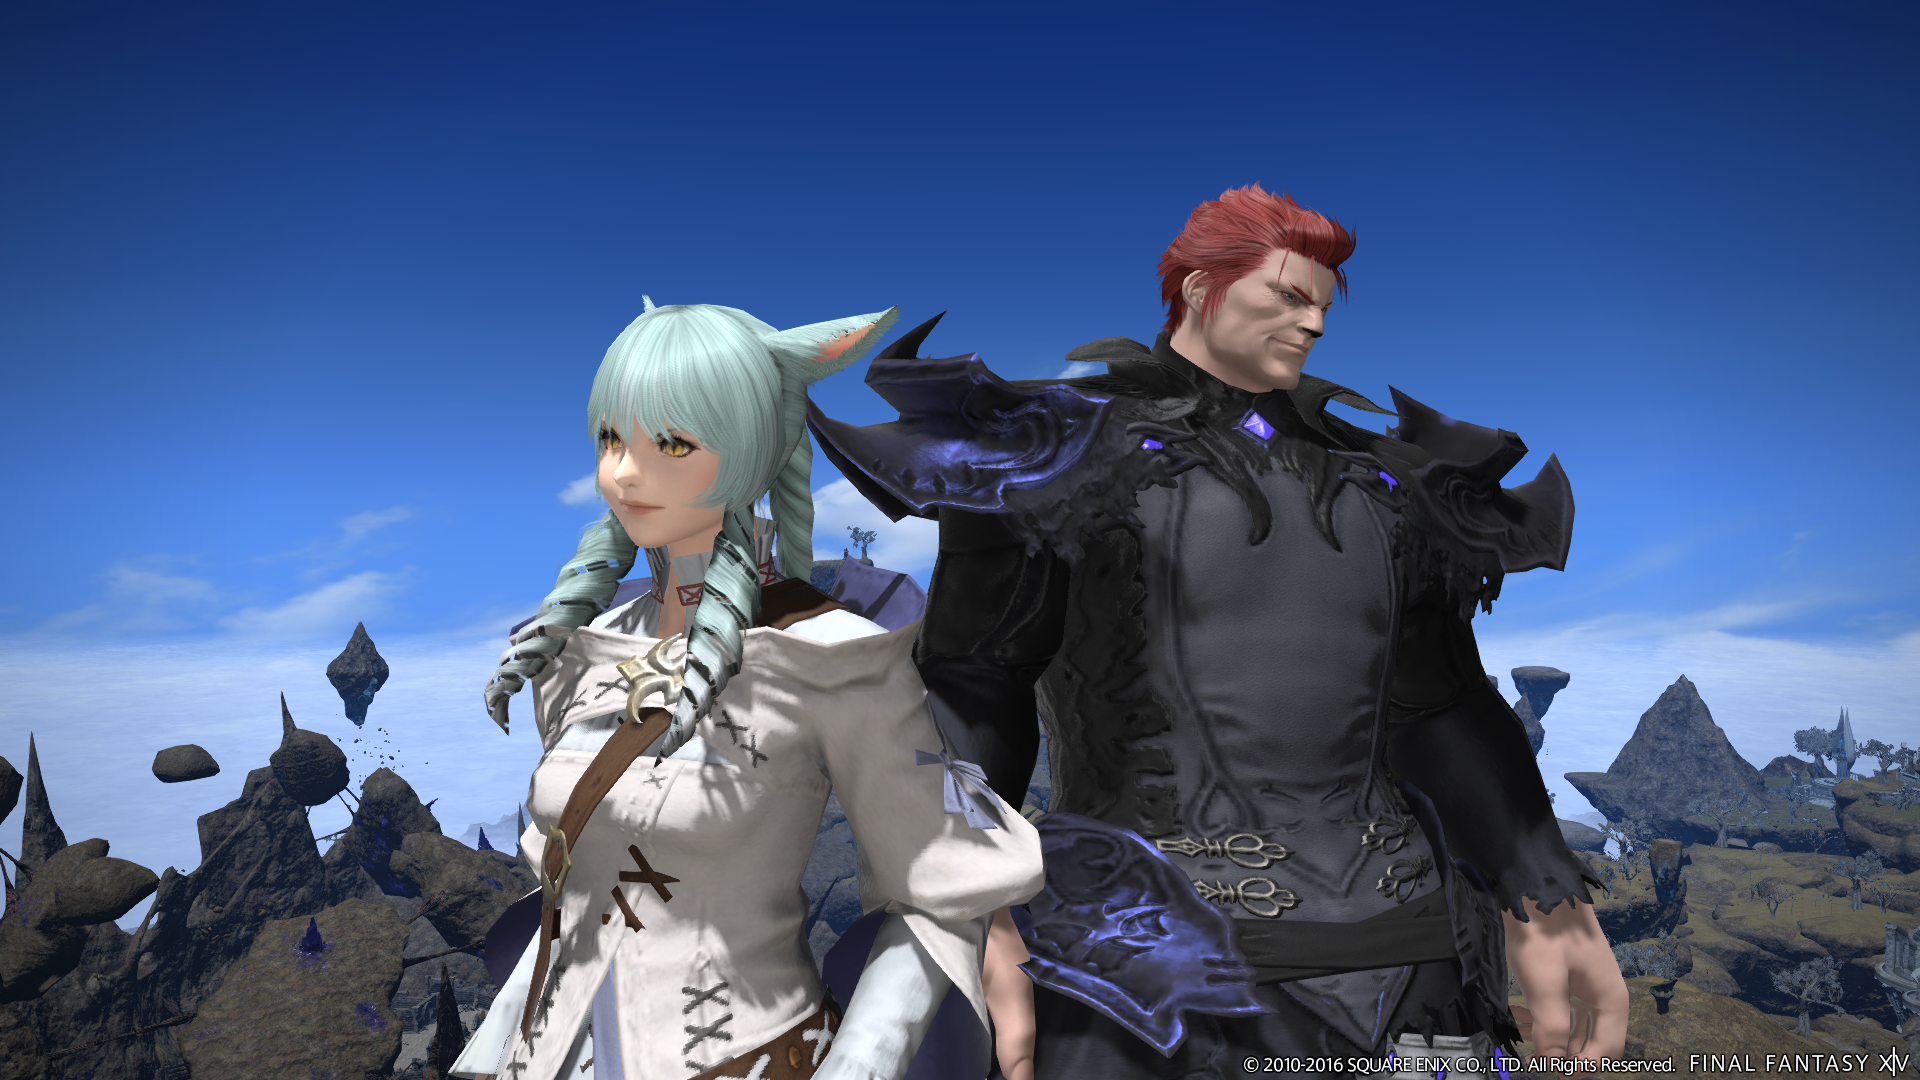 final fantasy xiv screenshots detail the new content in patch 3.2